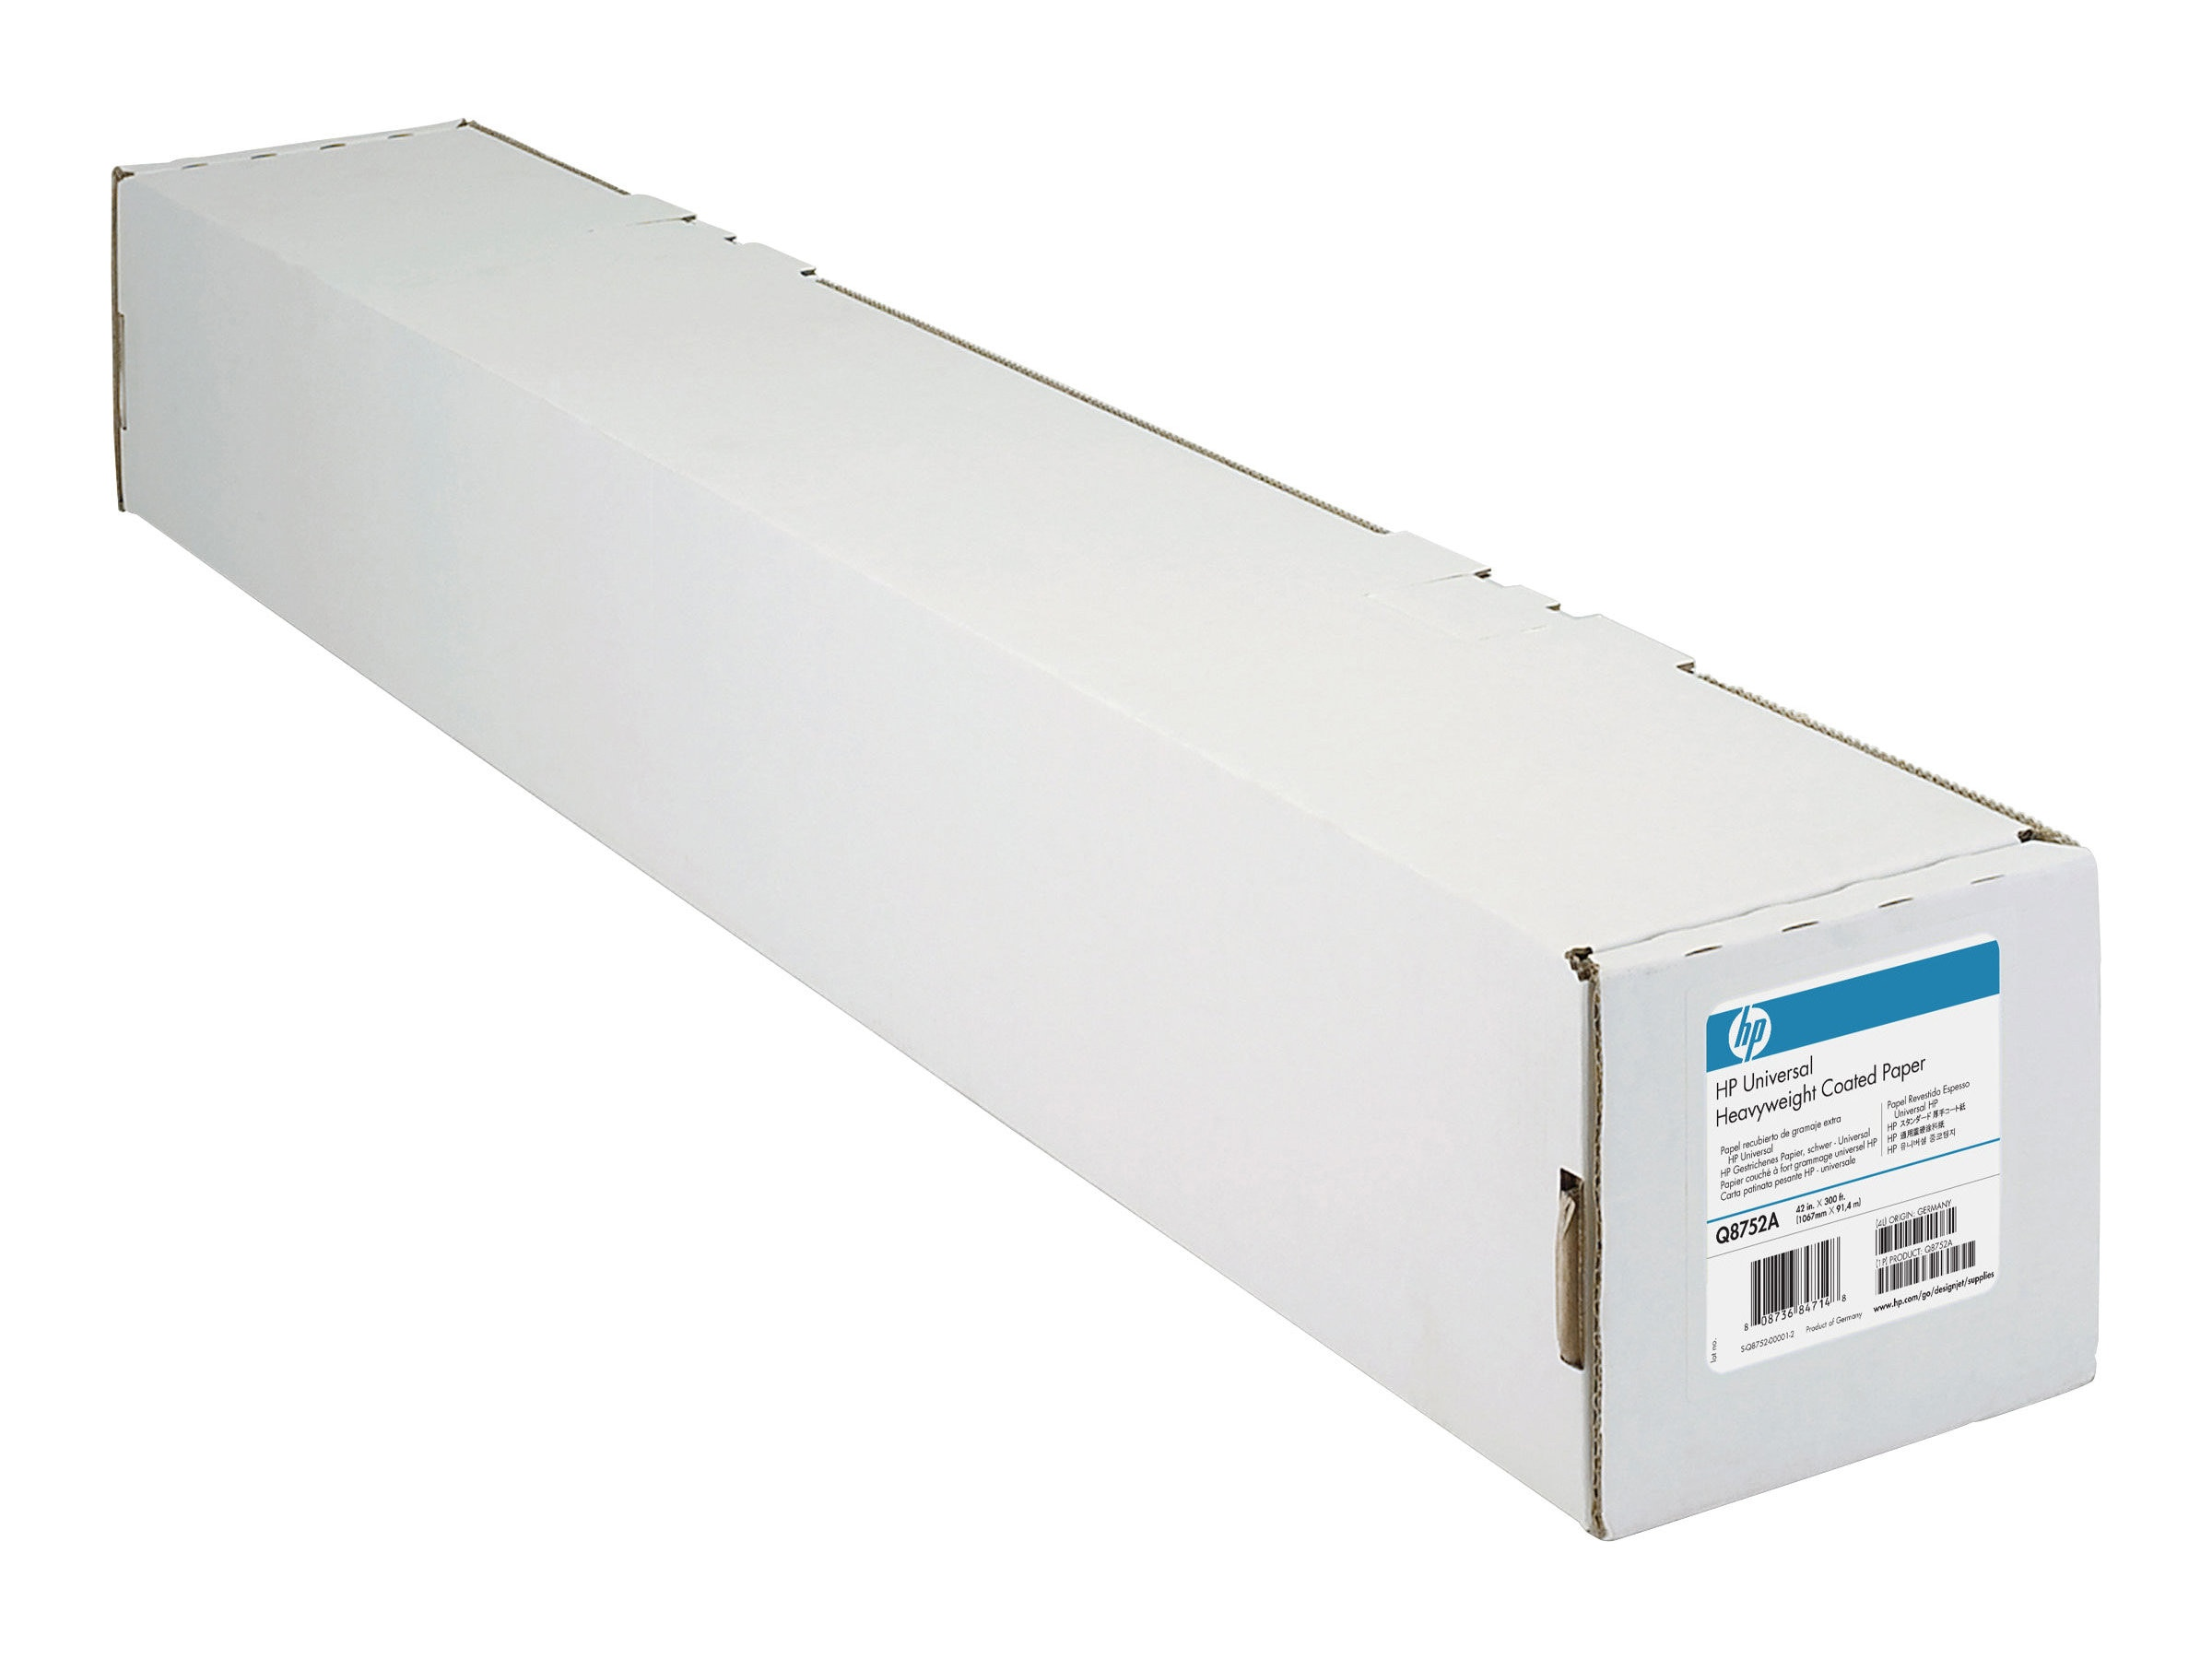 HP 36in x 300ft Coated Paper for DesignJet Printers